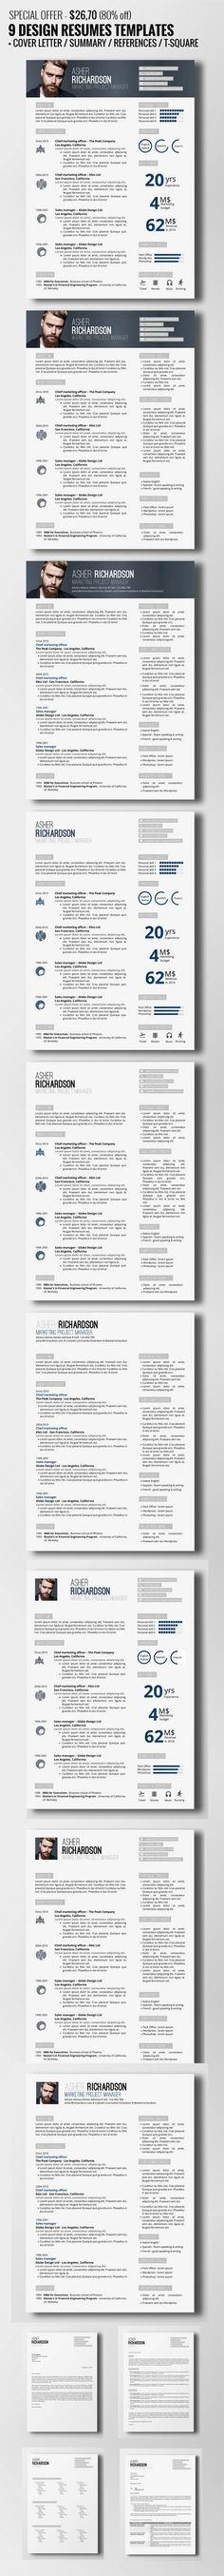 435 best Resume images on Pinterest Resume design, Design resume - 10 minute resume